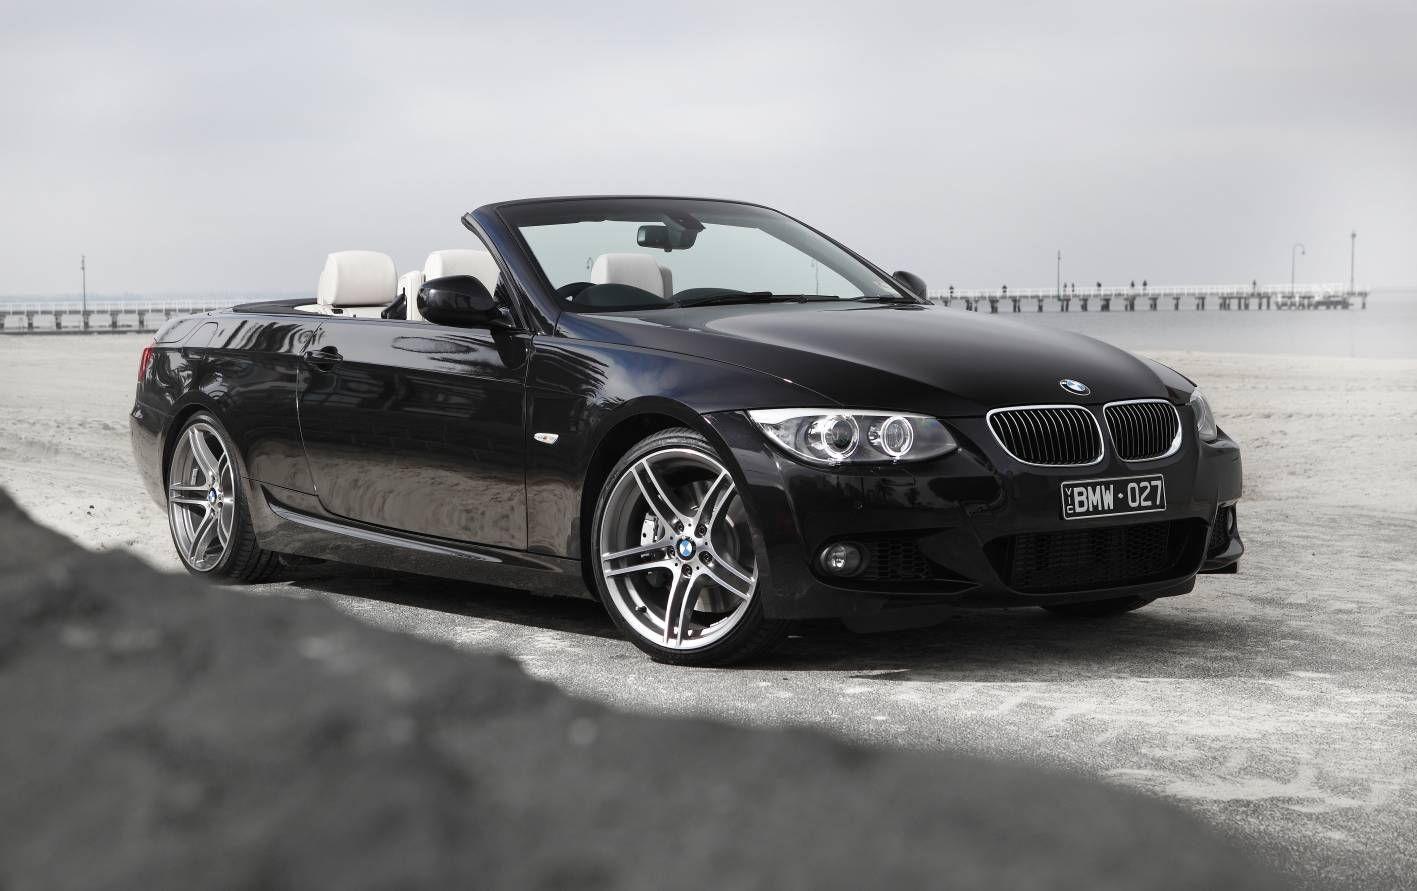 News HighLine Package For BMW Series And Series - 2013 bmw 325i